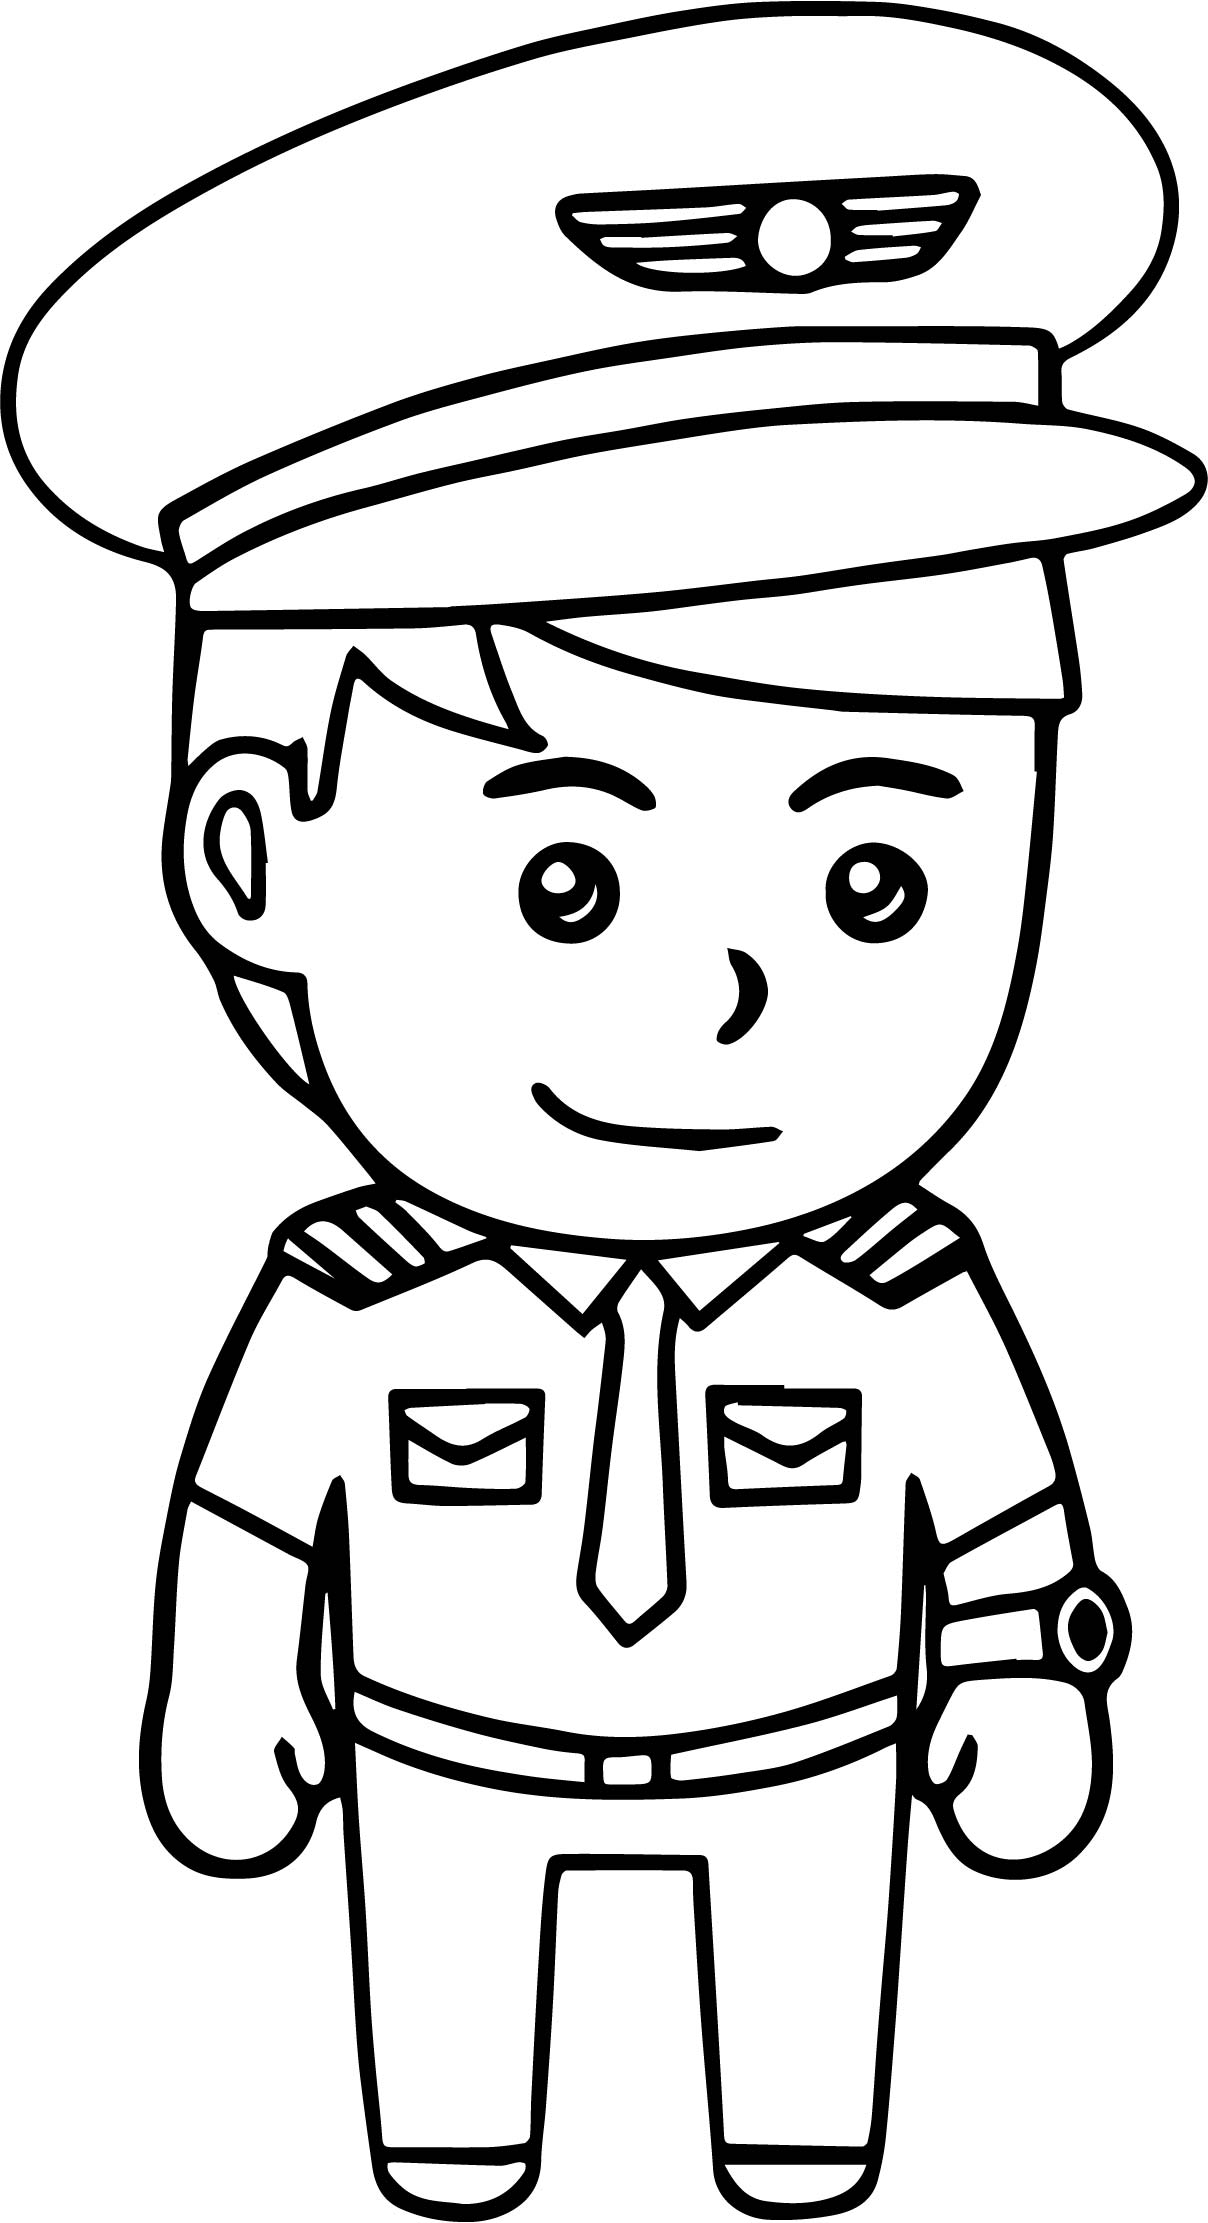 mac miller coloring pages - photo#25